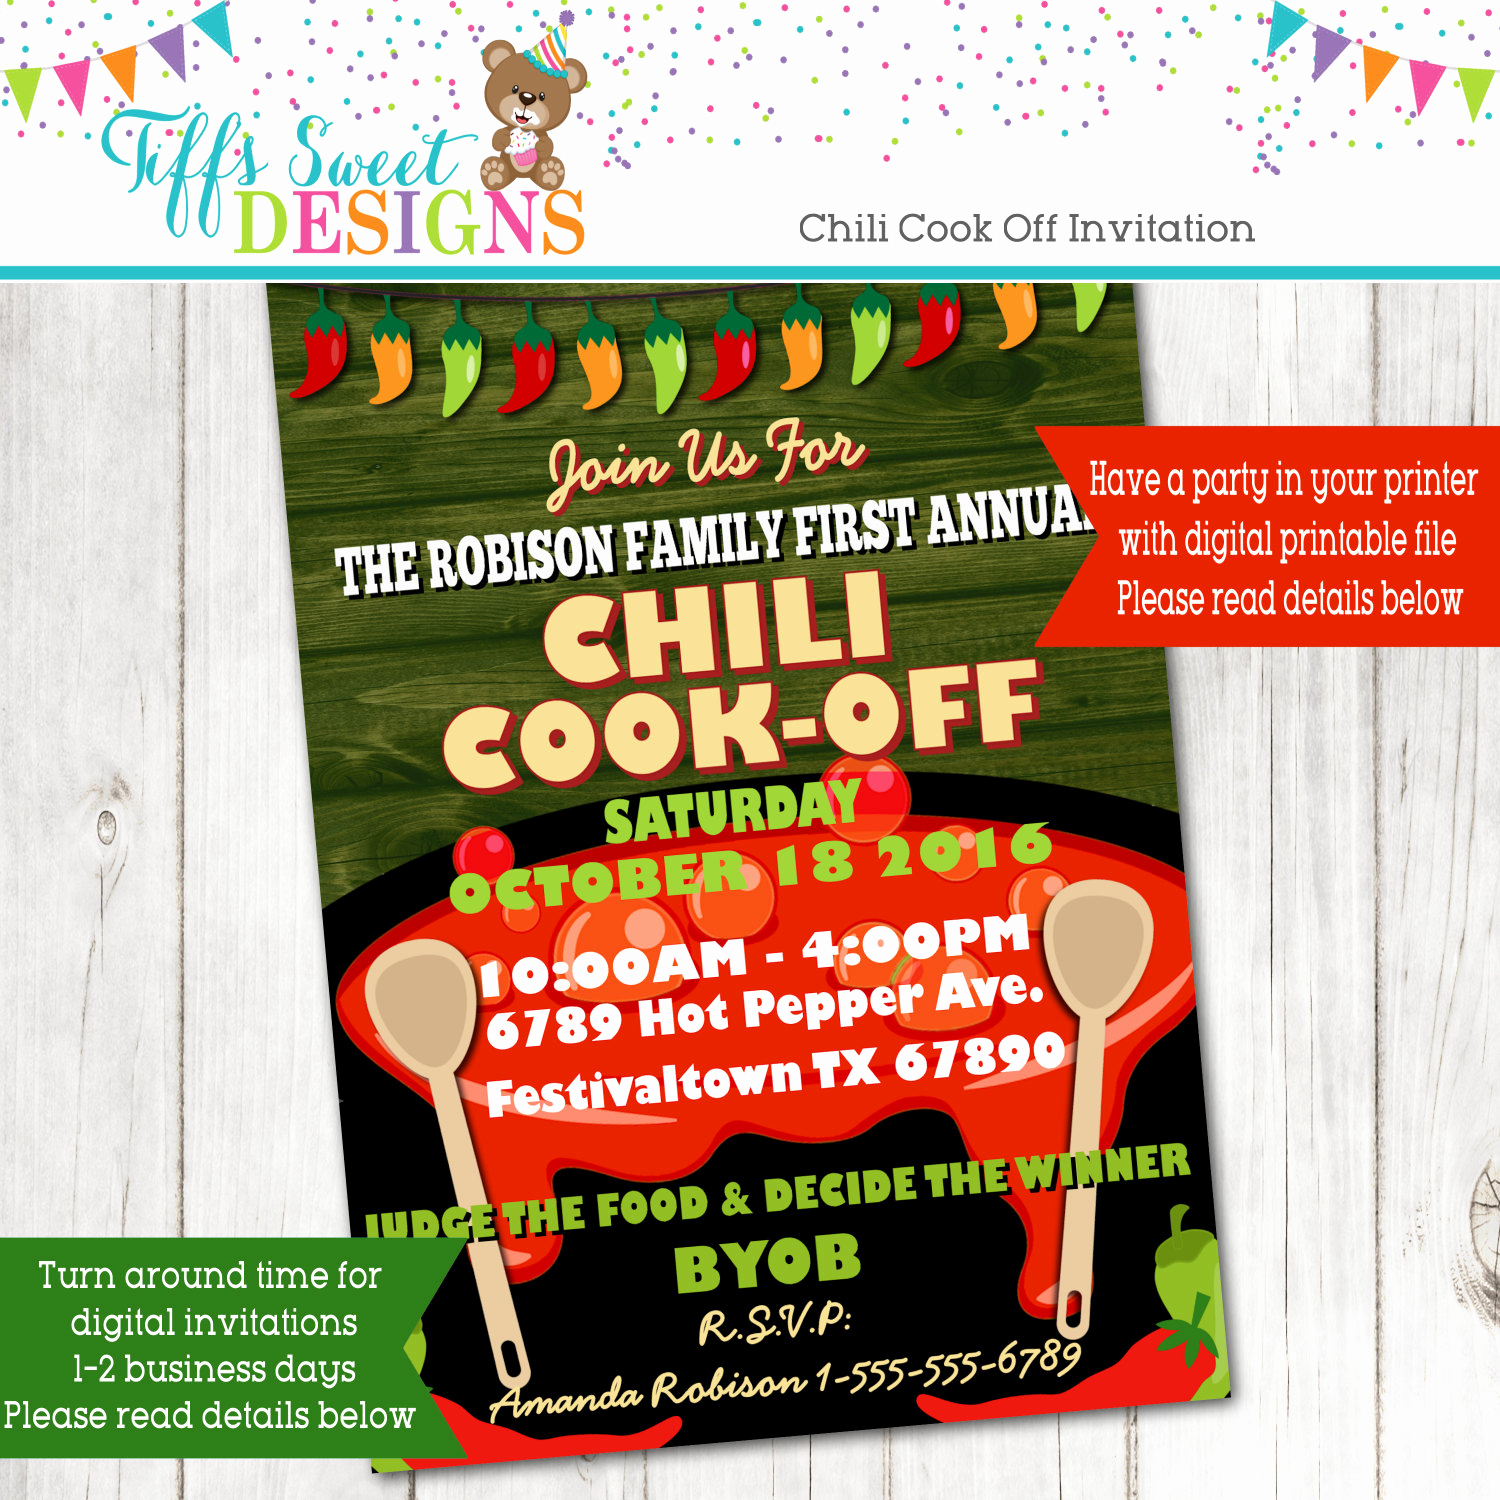 Chili Cook Off Invitation Template Unique Chili Cook F Invitation Hot Pepper Invitation Annual